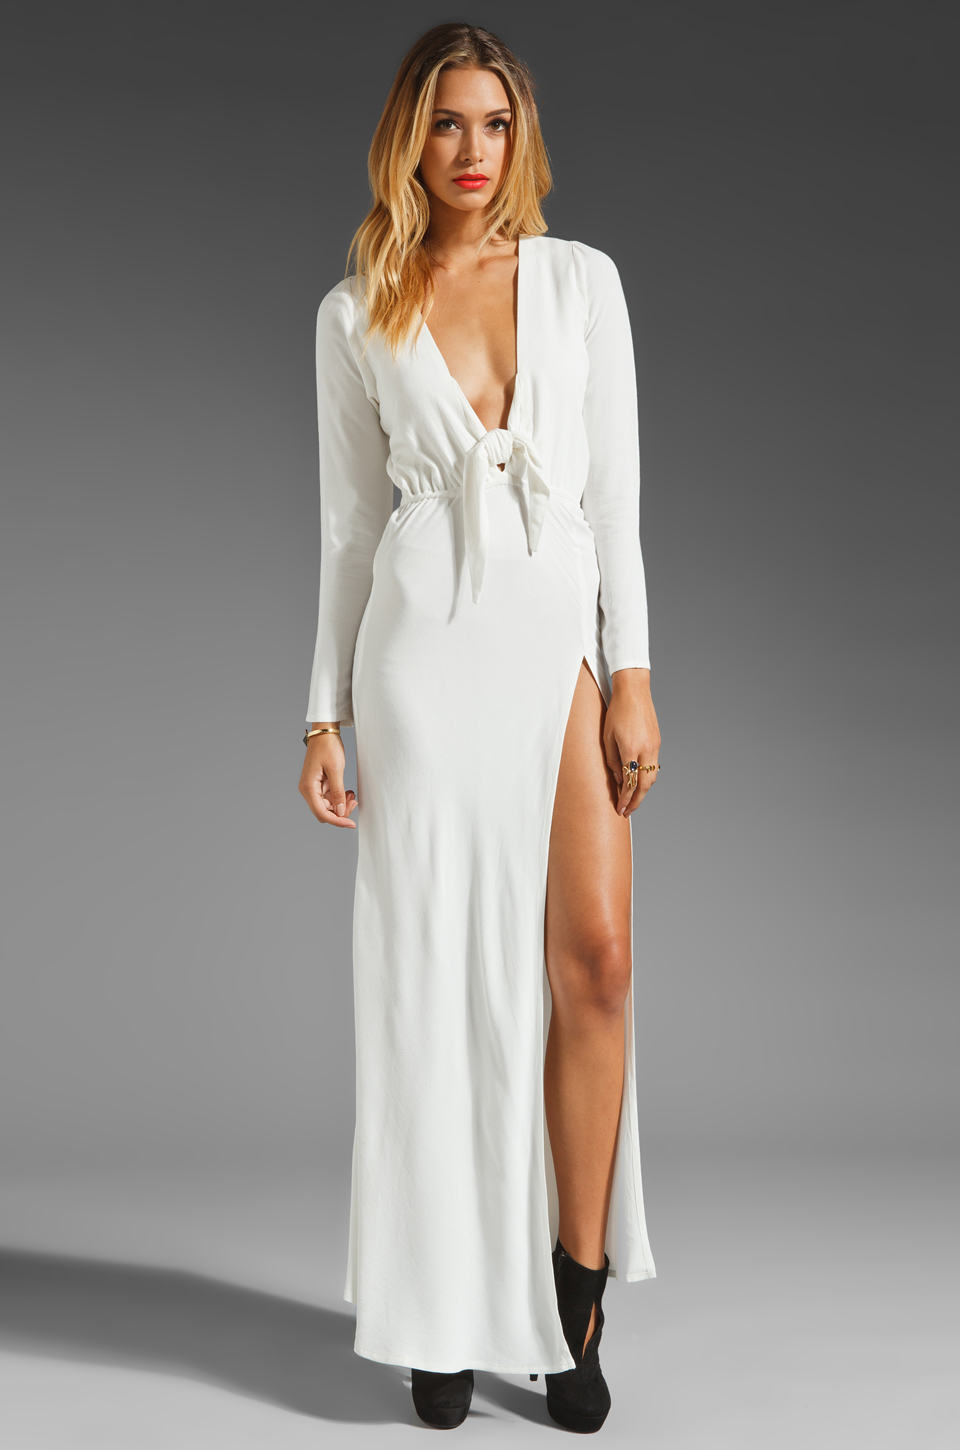 Lyst - Stone Cold Fox Desire Gown in White